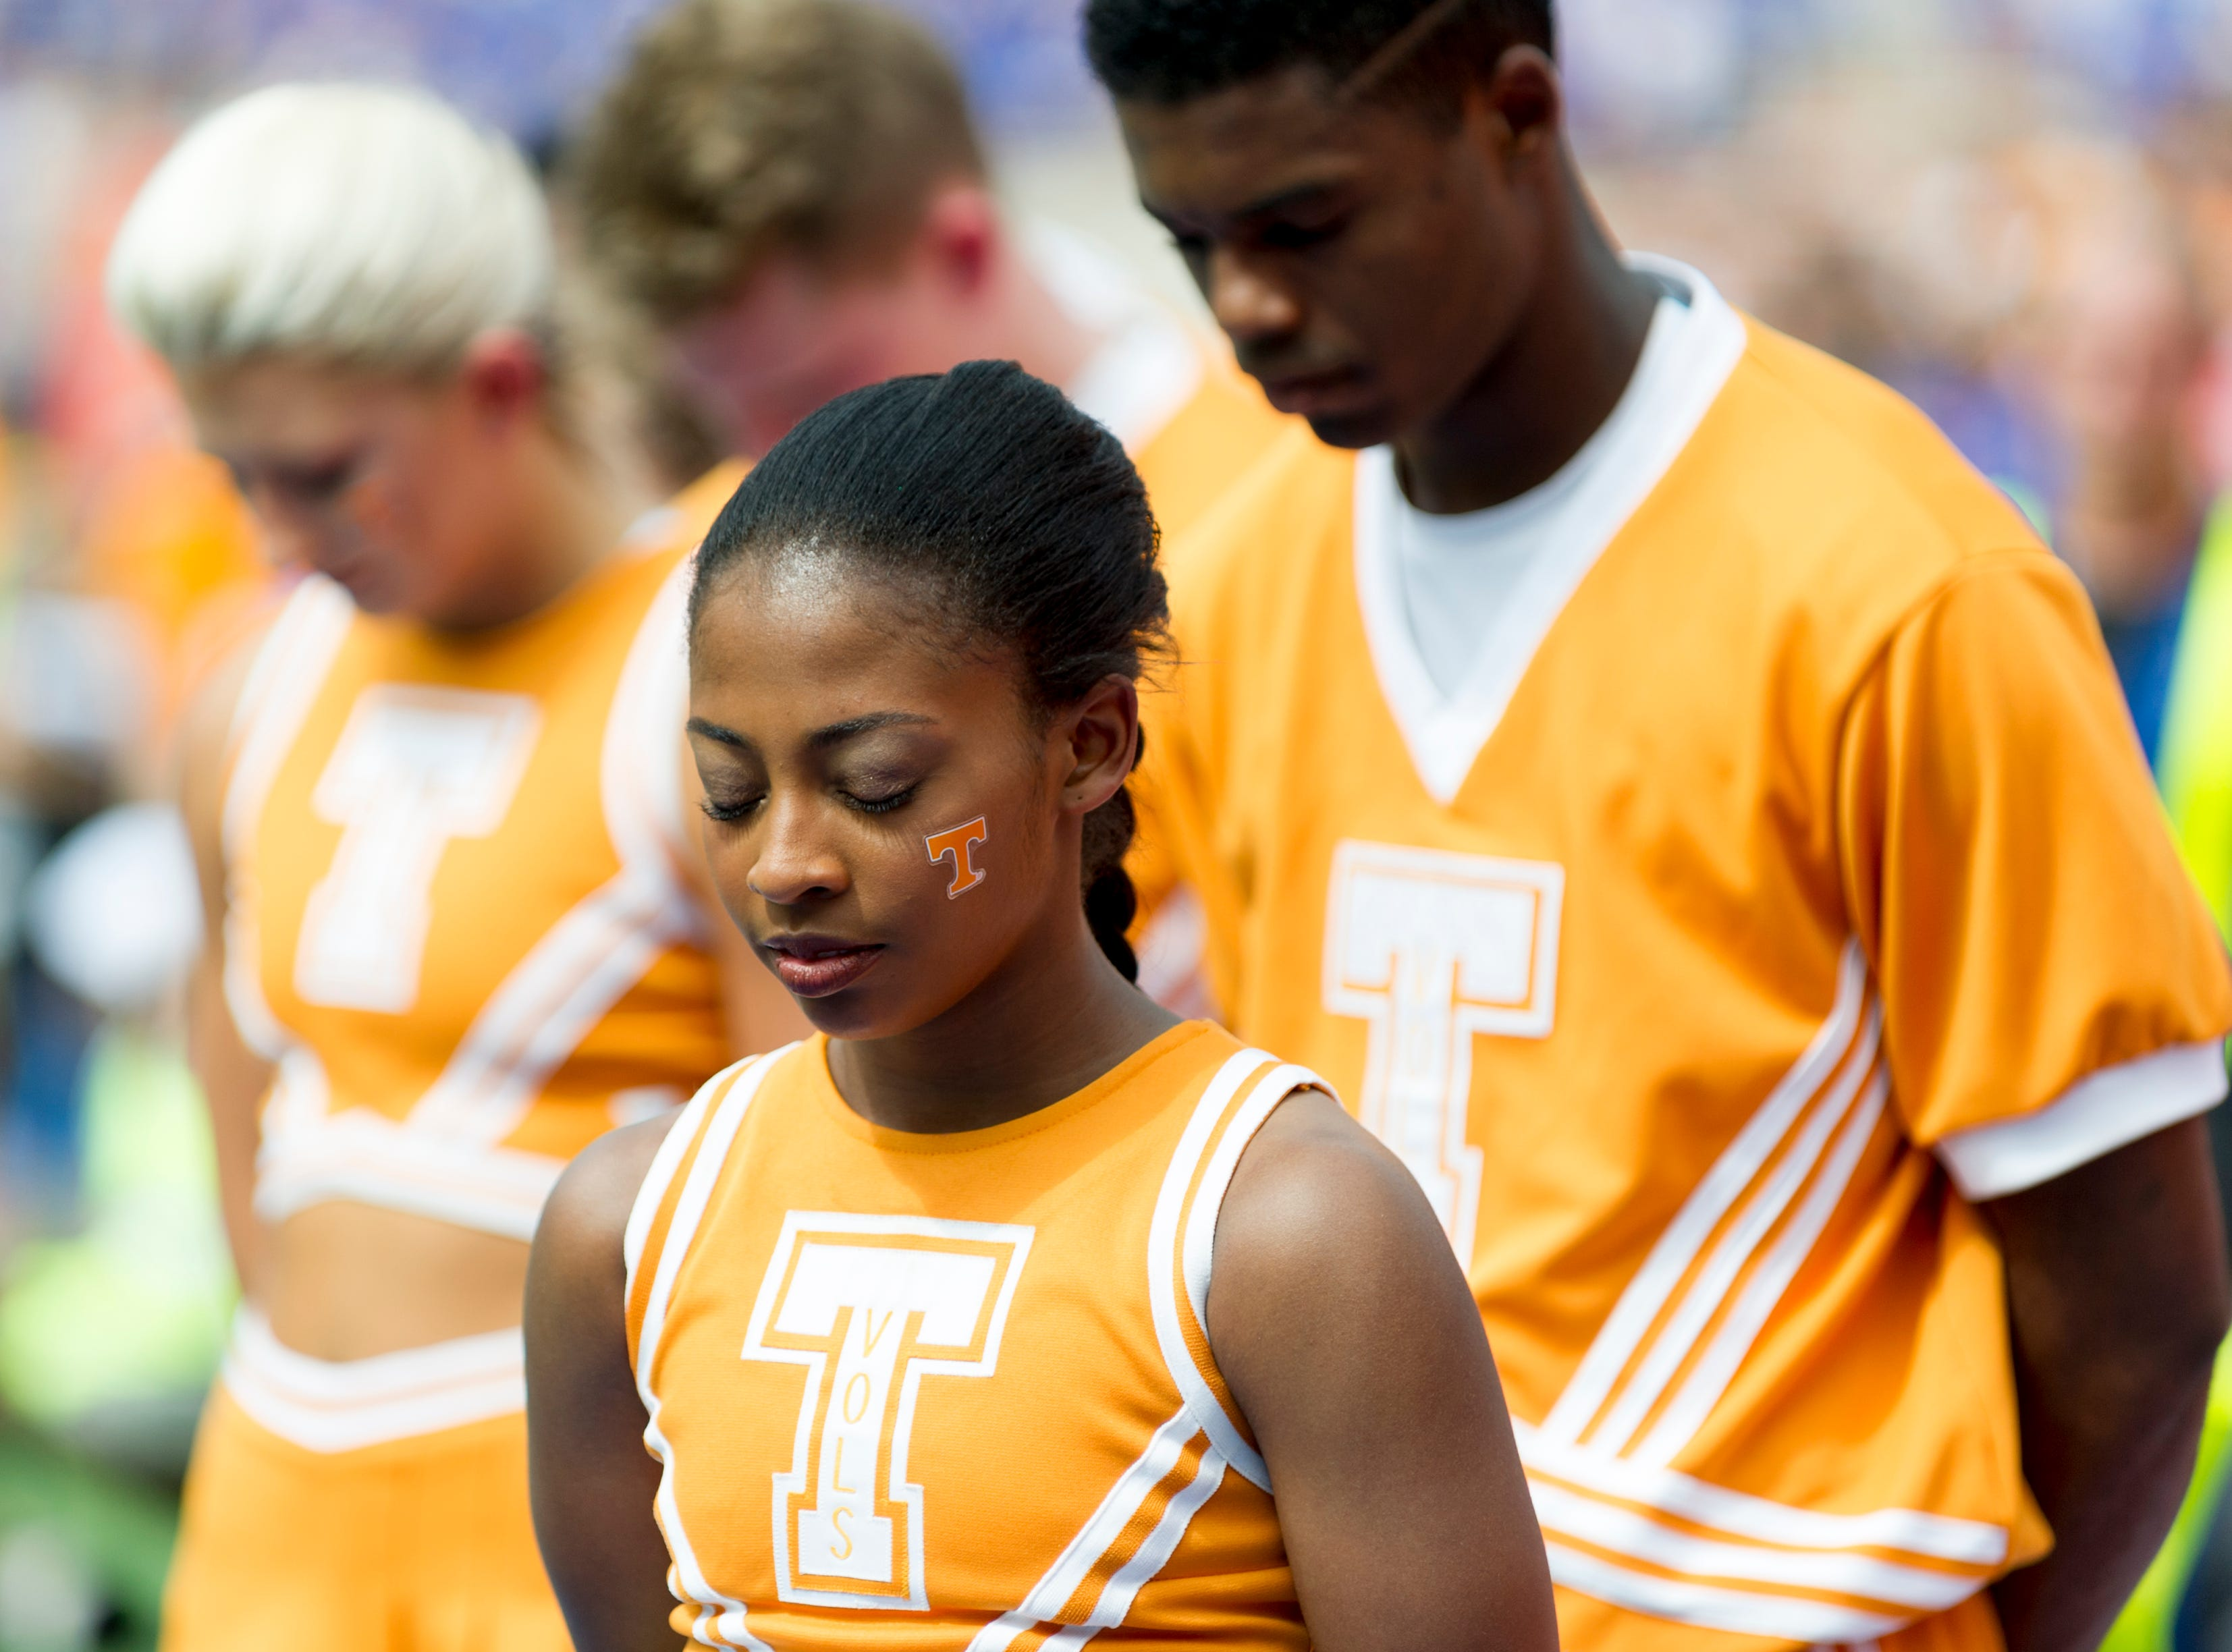 Tennessee cheerleaders have a moment of silence before the game during the Tennessee Volunteers vs. Florida Gators game at Ben Hill Griffin Stadium in Gainesville, Florida on Saturday, September 16, 2017.